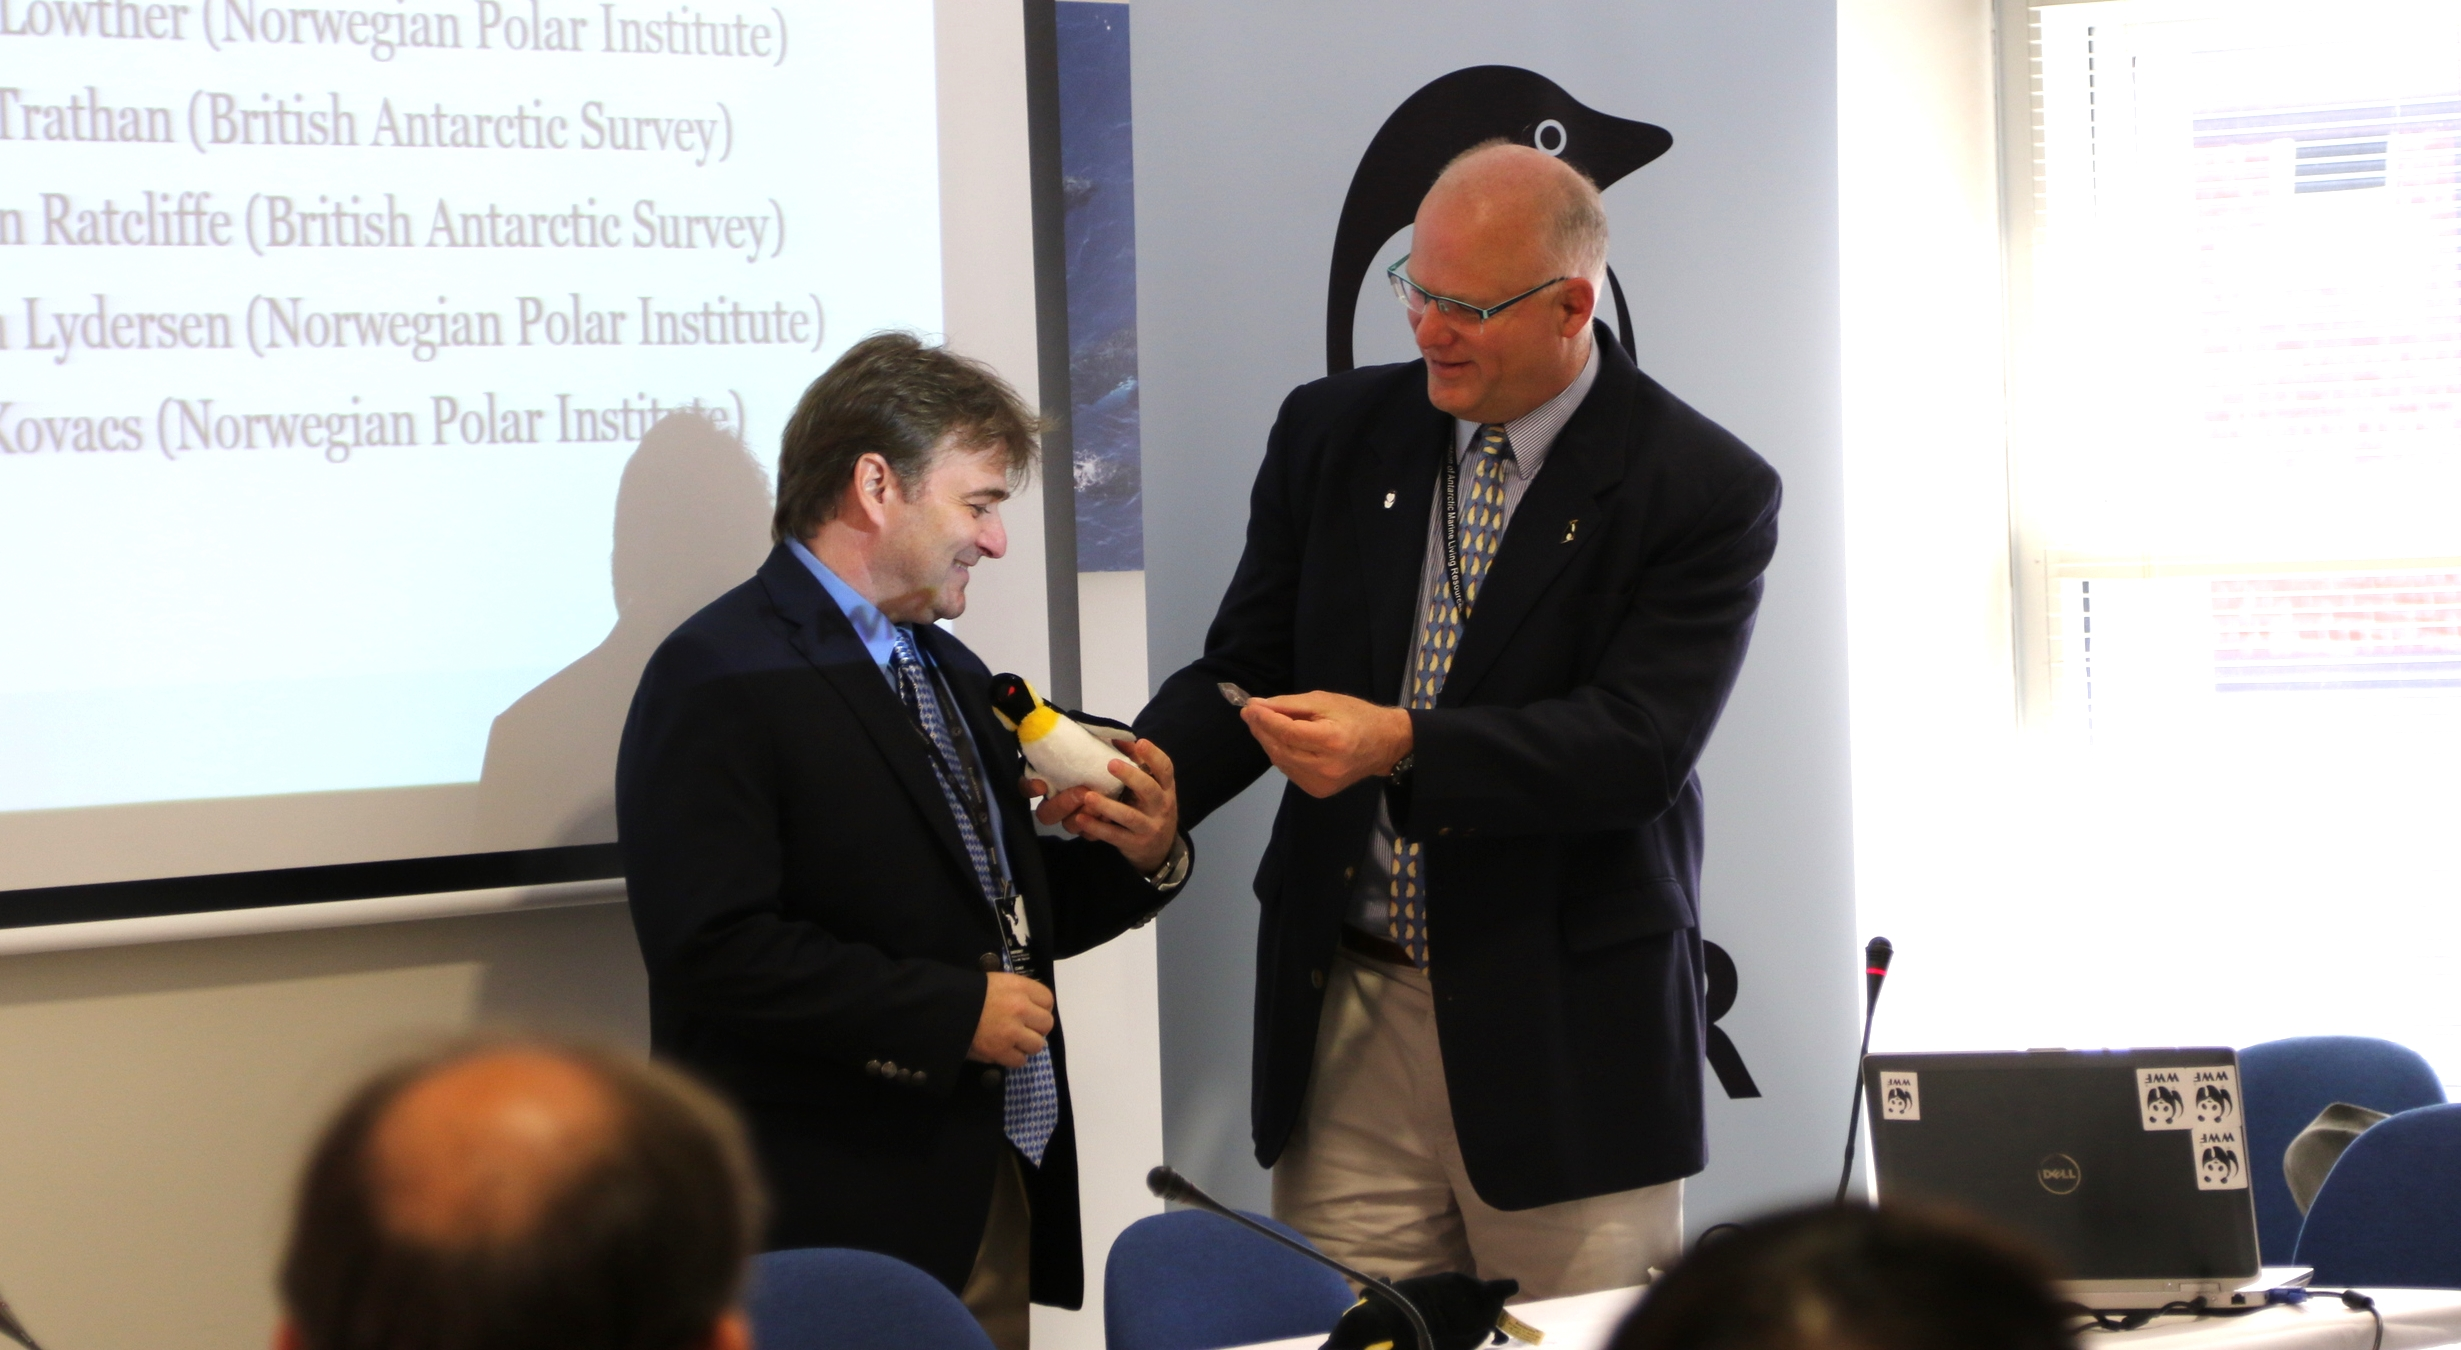 Werner handing over the AWR-penguin to Chris Reiss after his presentation on krill ageing methods. Photo: Monica Hägglund Langen